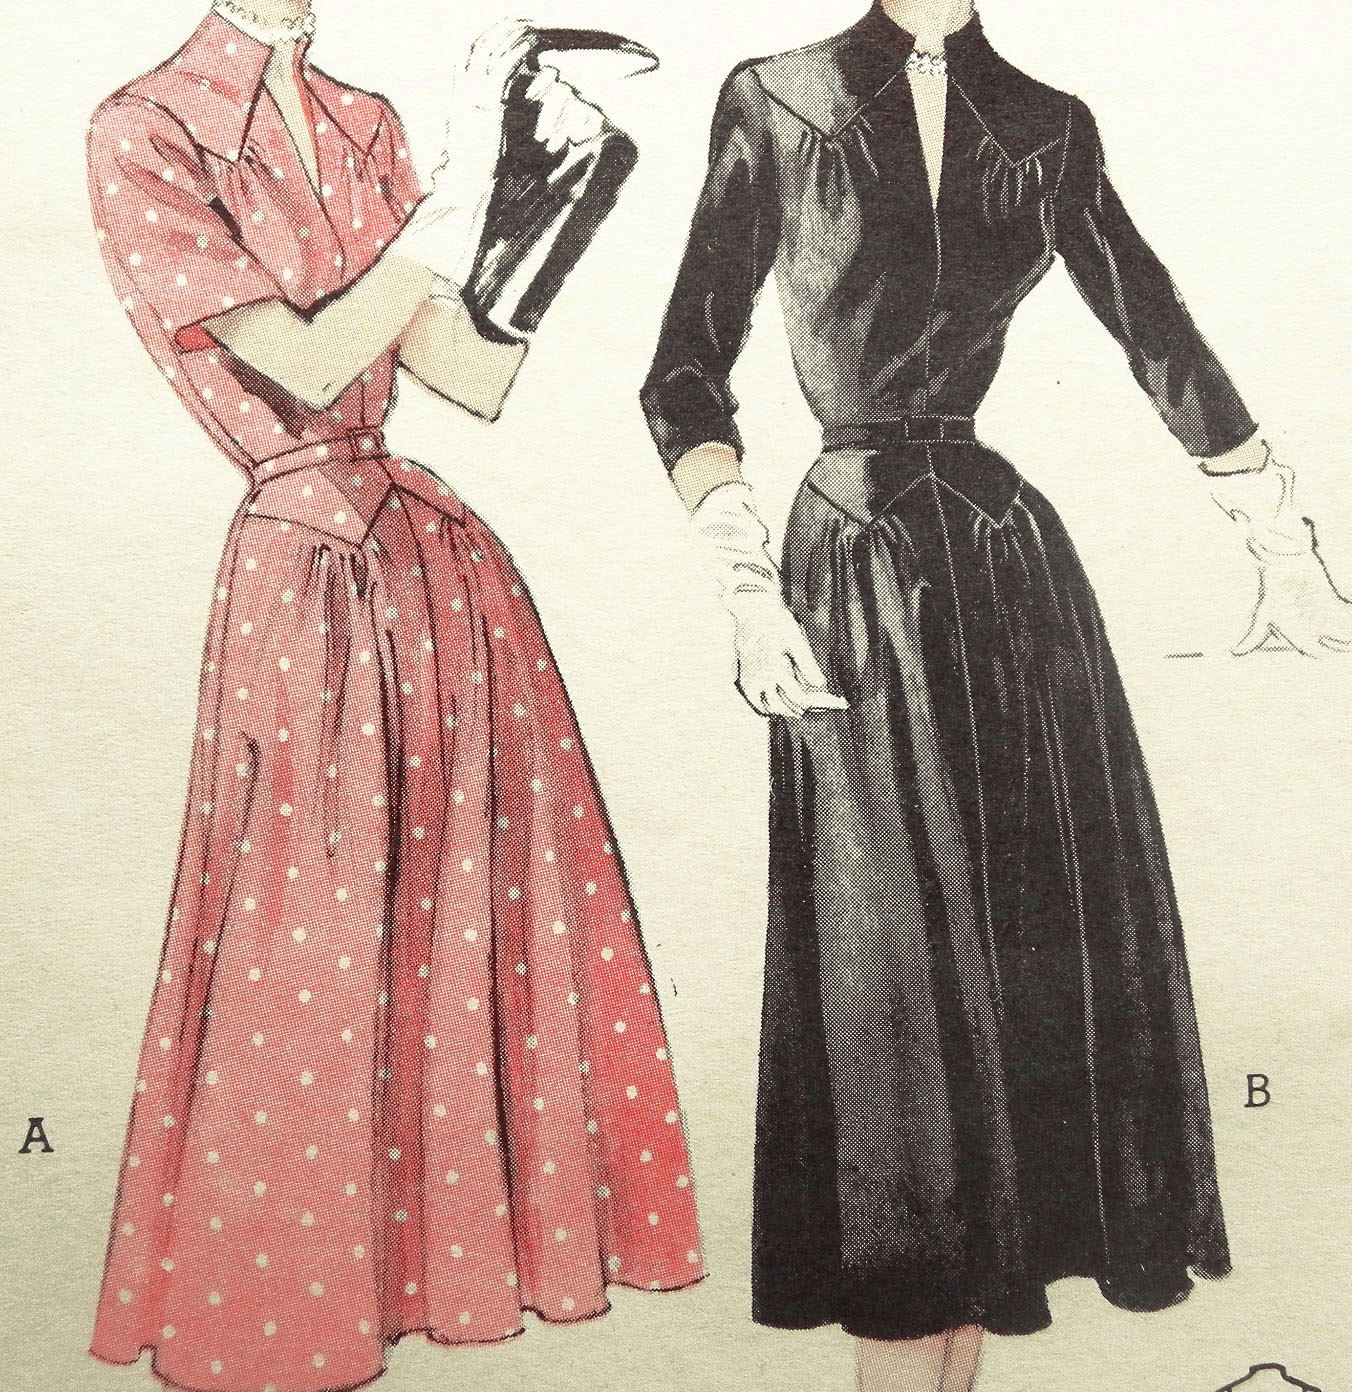 1950s Butterick 6499 Vintage DRESS Pattern Stand Up Collar  SLIMMING Yoke Skirt  Bust Size 34 Uncut FF